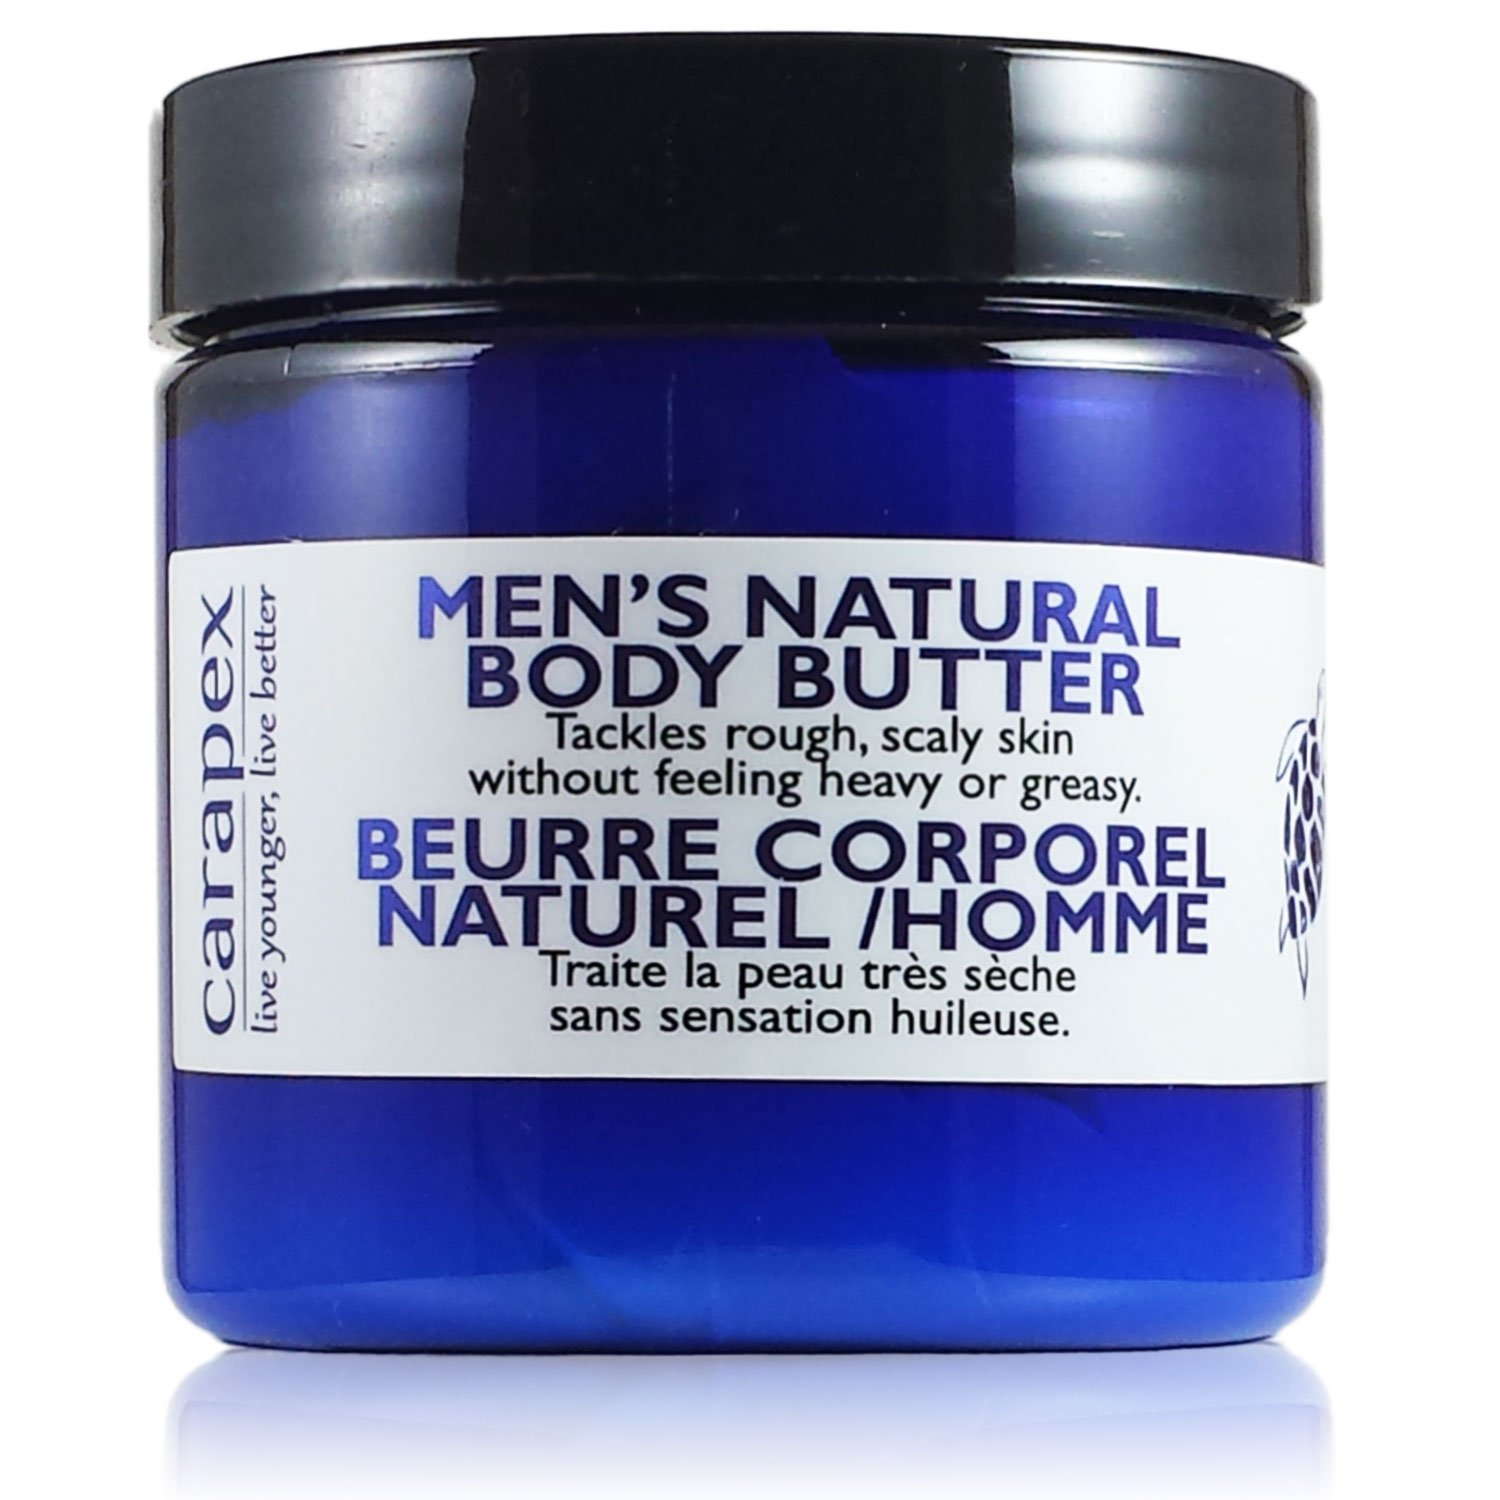 Carapex Natural Body Butter for Men, for Extreme Dryness, Extra Dry Skin, Deep Moisturizer, Unscented with Jojoba, Beeswax (Single)